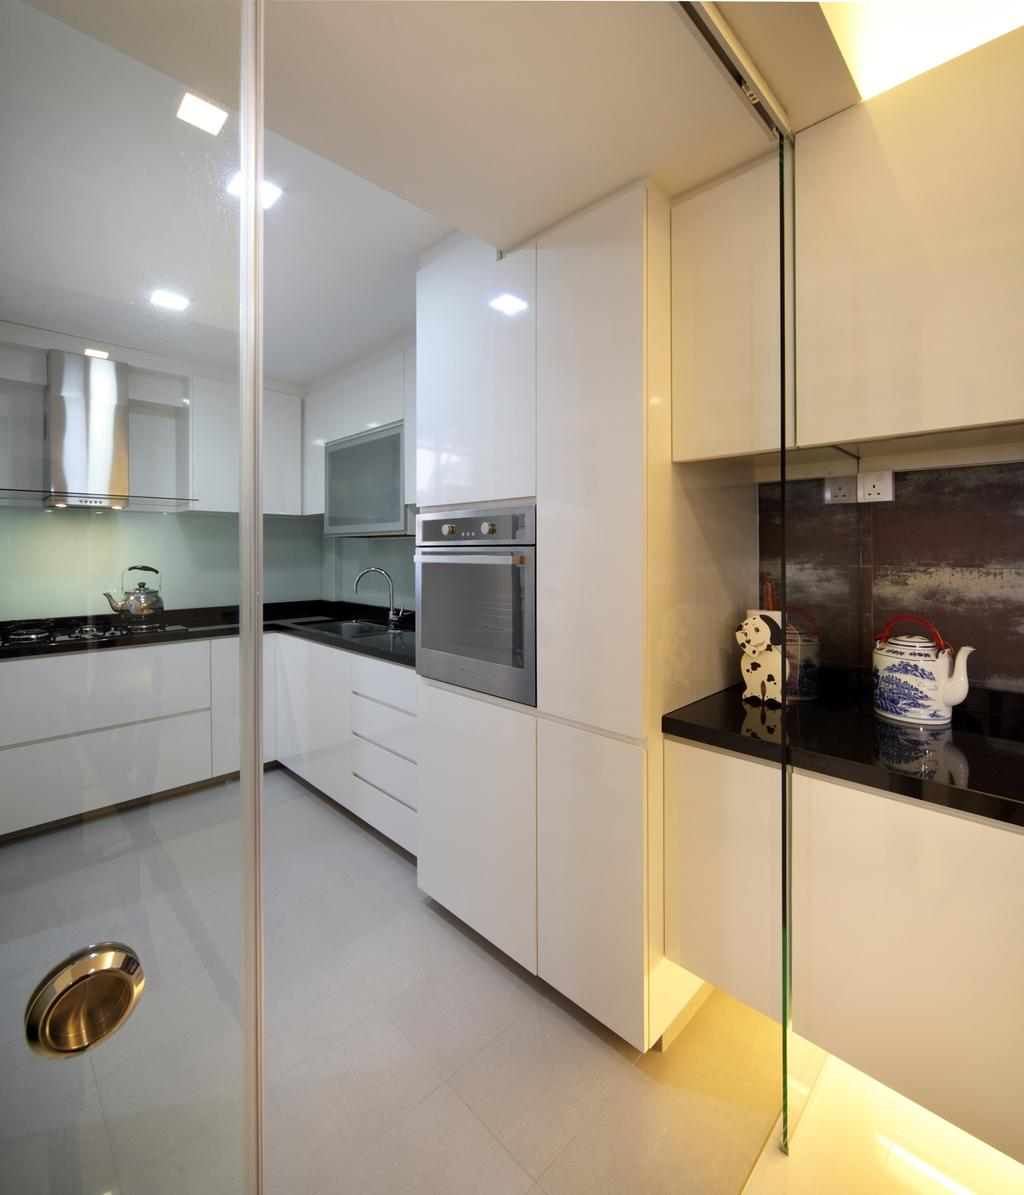 Transitional, HDB, Kitchen, Tampines Street 47, Interior Designer, Chapter One Interior Design, Exhaust Hood, Kitchen Counter, White, Laminate, Glass Wall, Glass Doors, Black, Cabinet, Ornaments, Sink, Appliance, Electrical Device, Oven, Indoors, Interior Design, Room